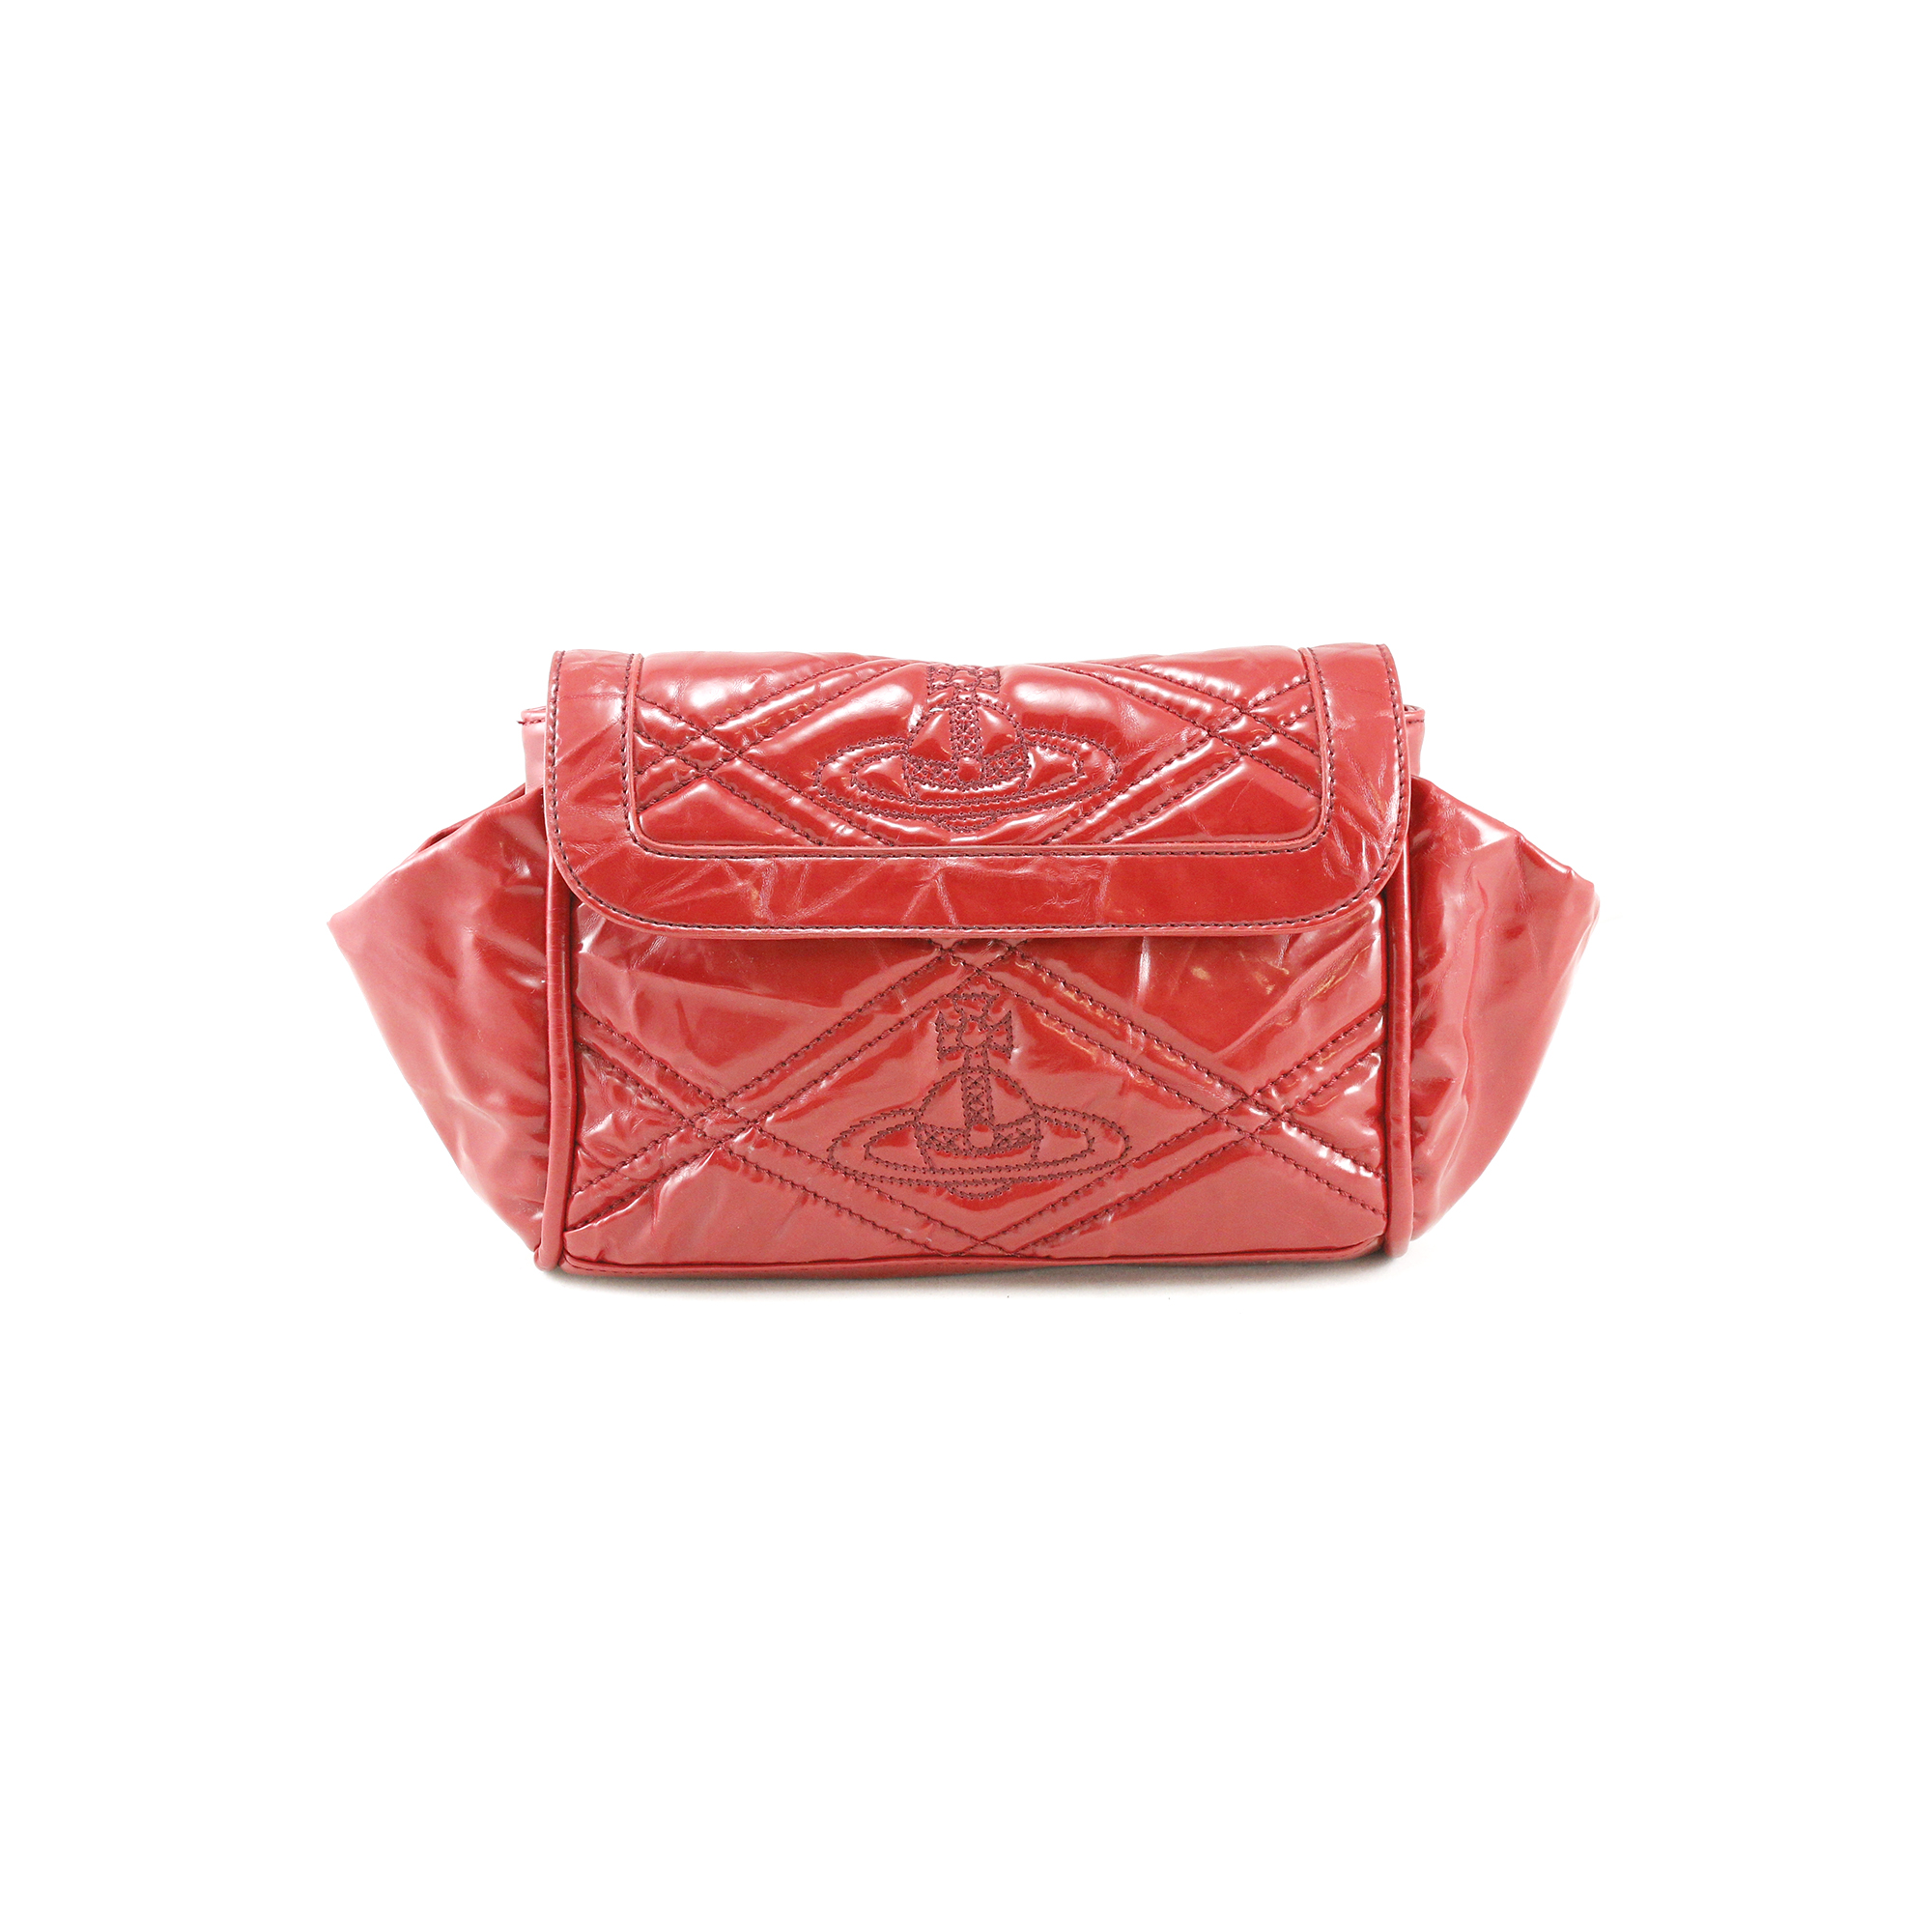 f791dc0ae1 Authentic Second Hand Vivienne Westwood Patent Leather Clutch  (PSS-005-00004) - THE FIFTH COLLECTION